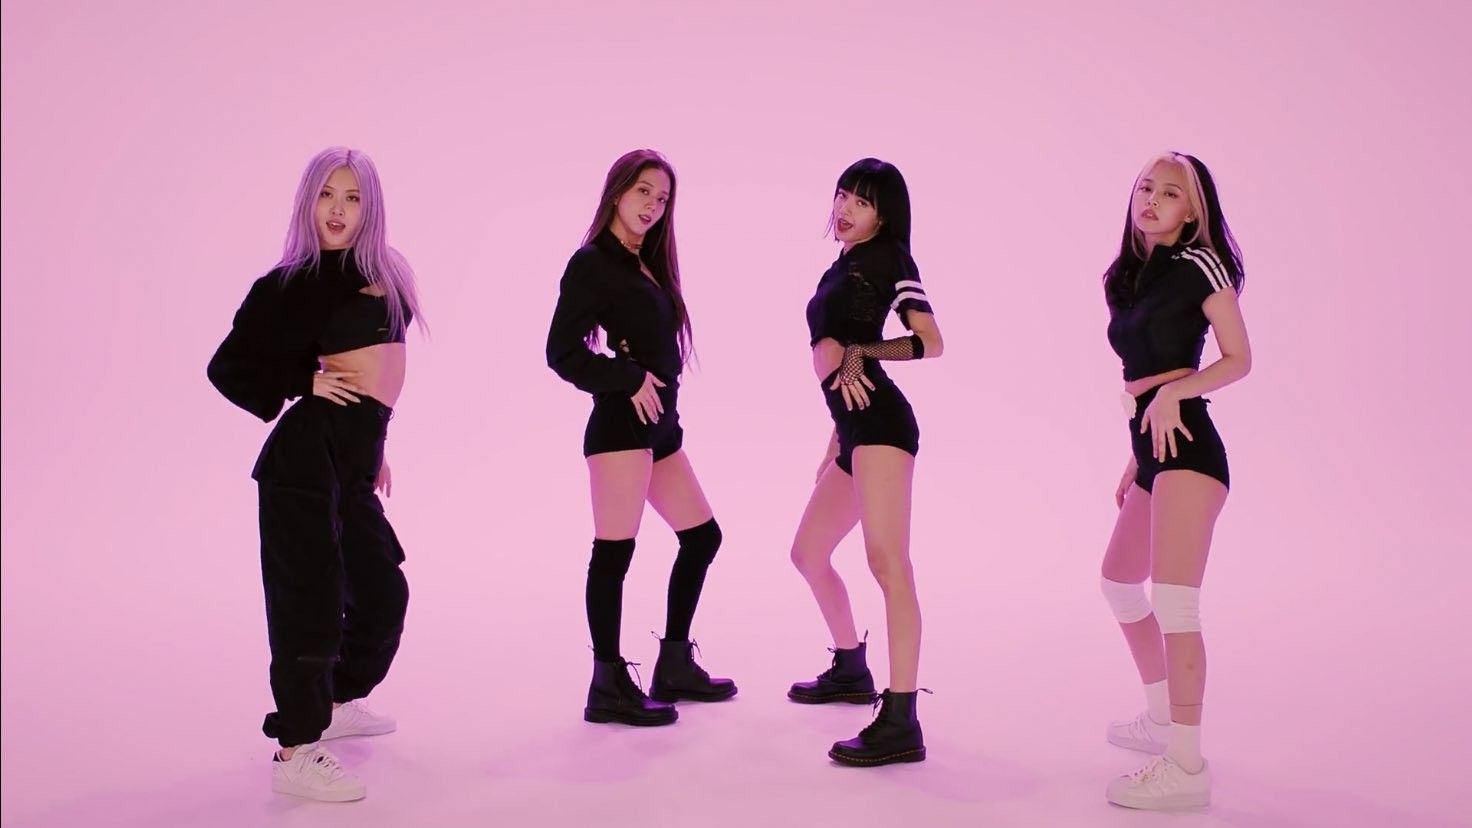 200705 Blackpink In How You Like That Dance Practice Dance Outfits Practice Practice Outfits Blackpink Fashion